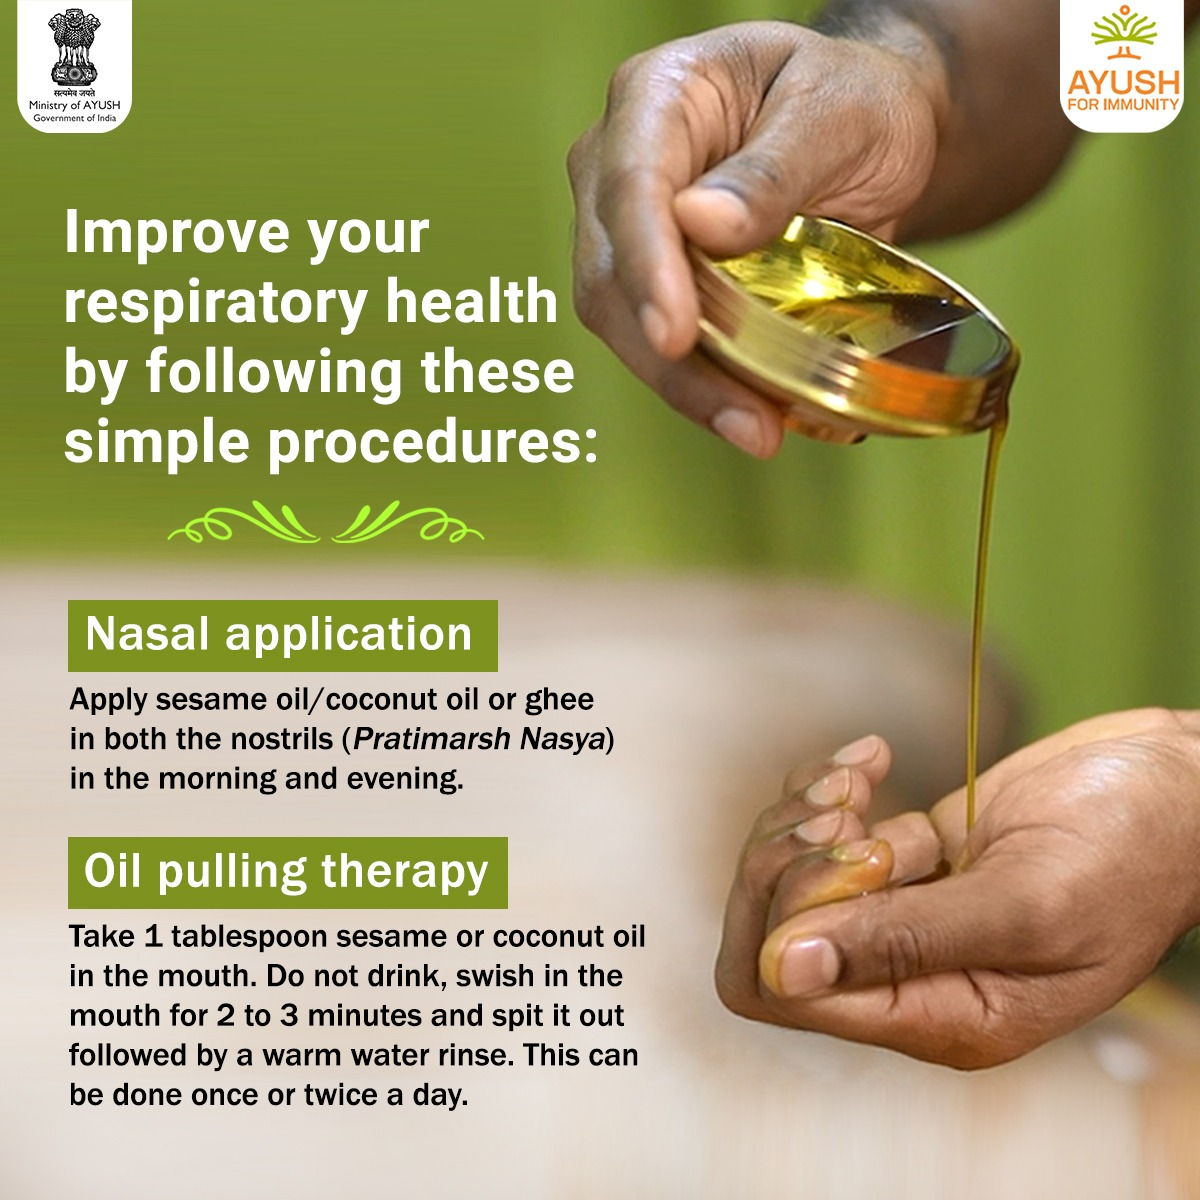 #Ayurveda focuses on preventive measures that help in enhancing #immunity.   It is based on the belief that #health and #wellness depend on a delicate balance between the mind, body and spirit.   By following some simple procedures at home, we can help improve our body's disease